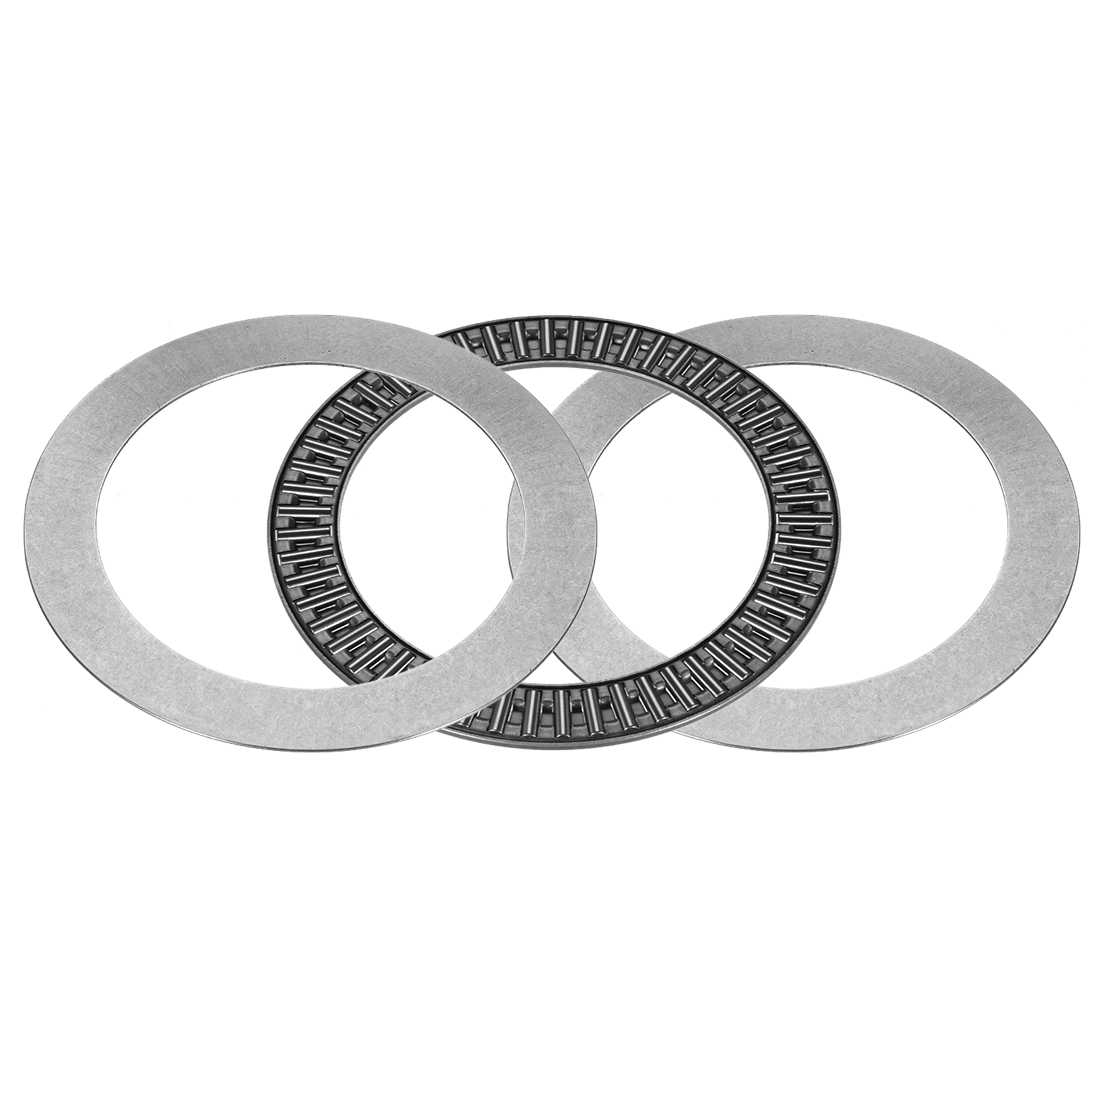 AXK100135+2AS Needle Roller Thrust Bearings with 2 Washers, 100x135x6mm Bearing